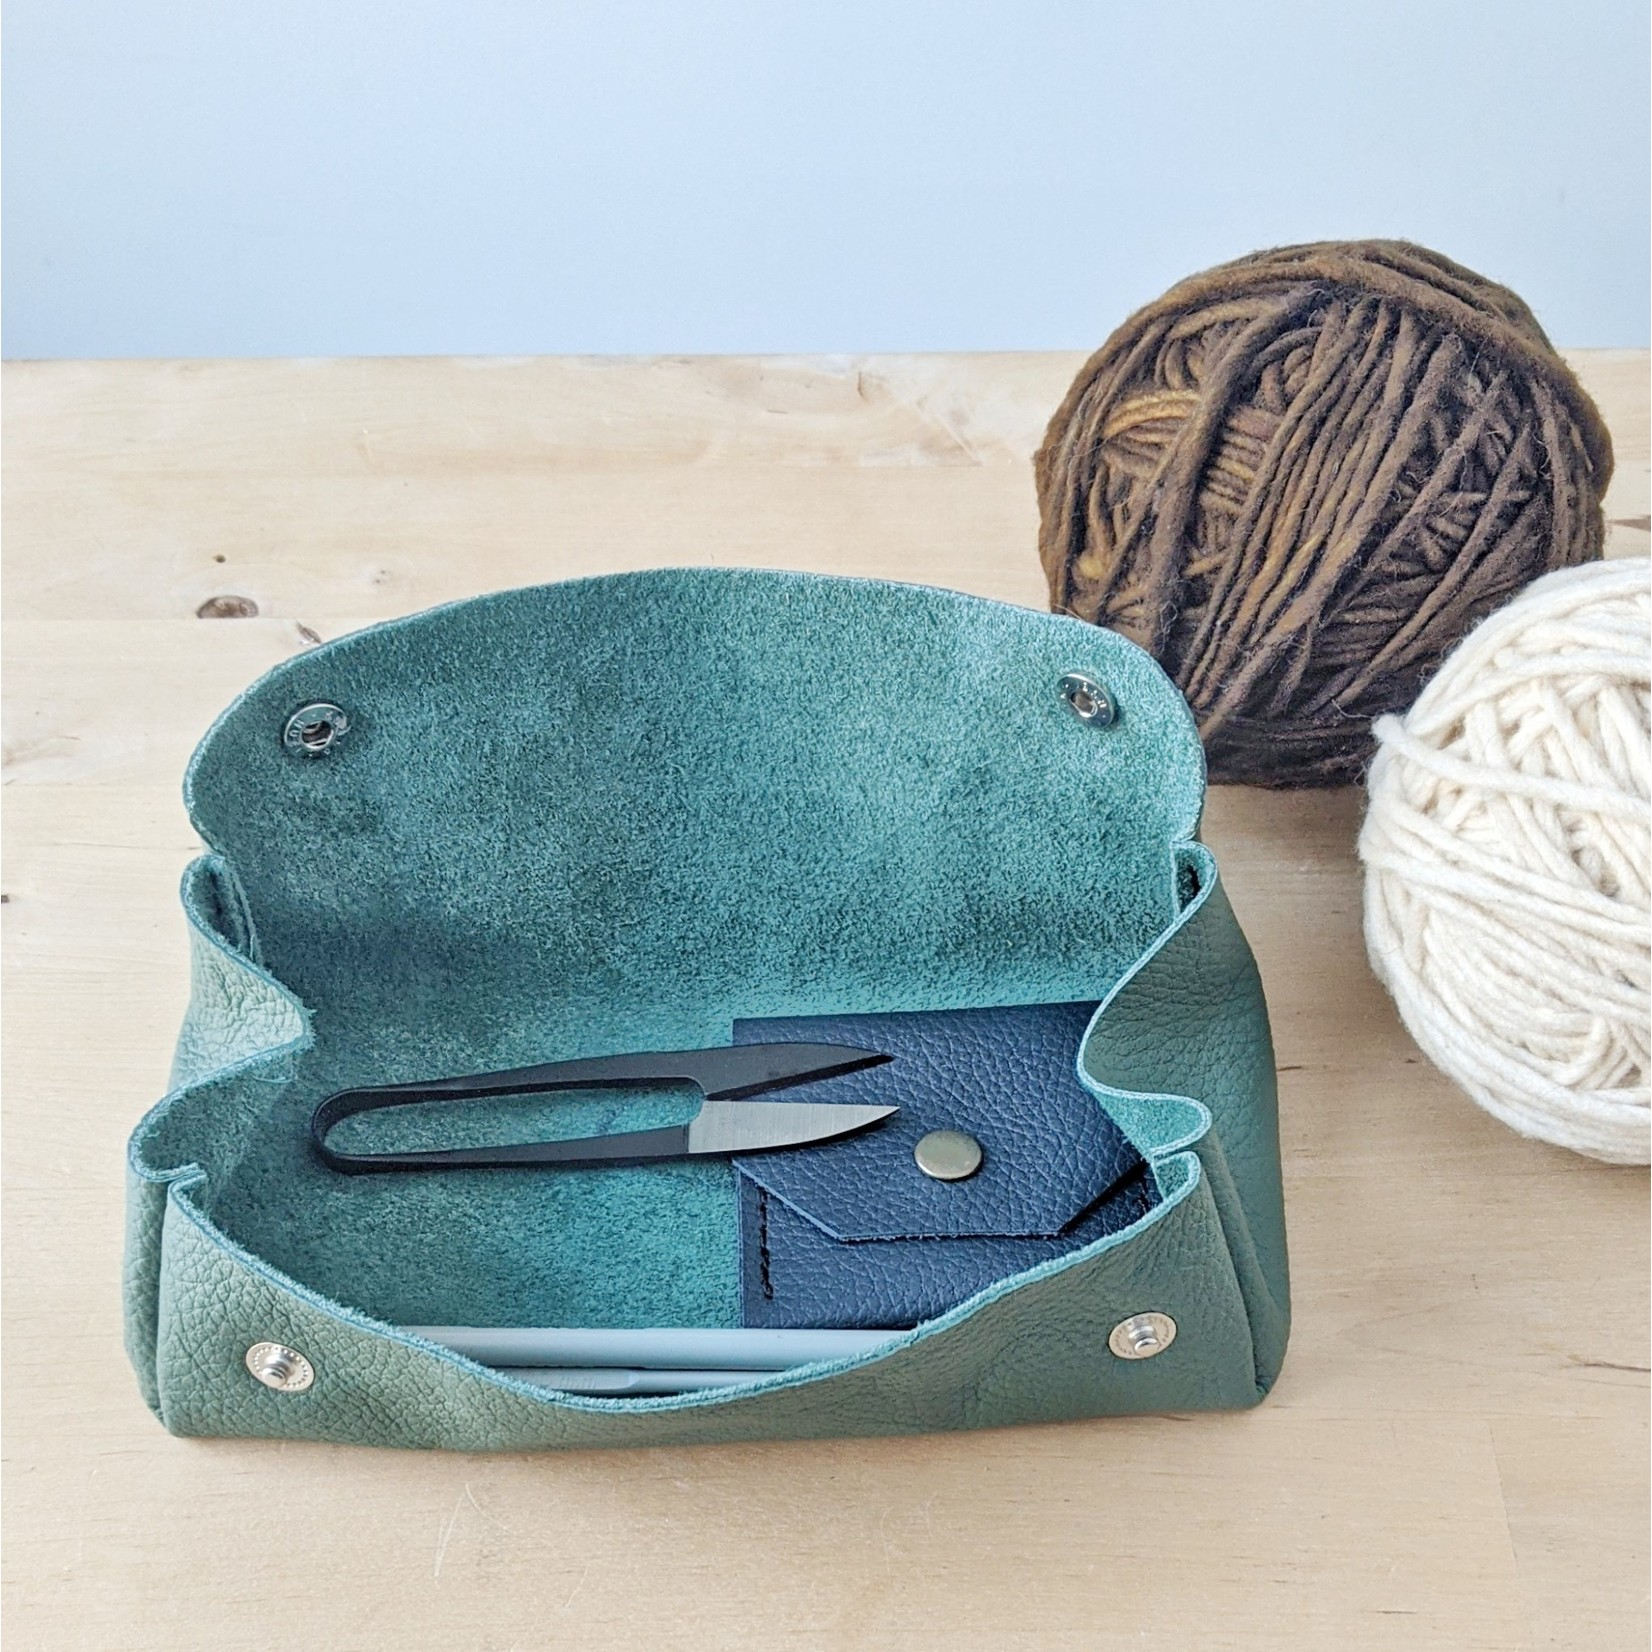 Her Leather Co. Grand Notion Pouch